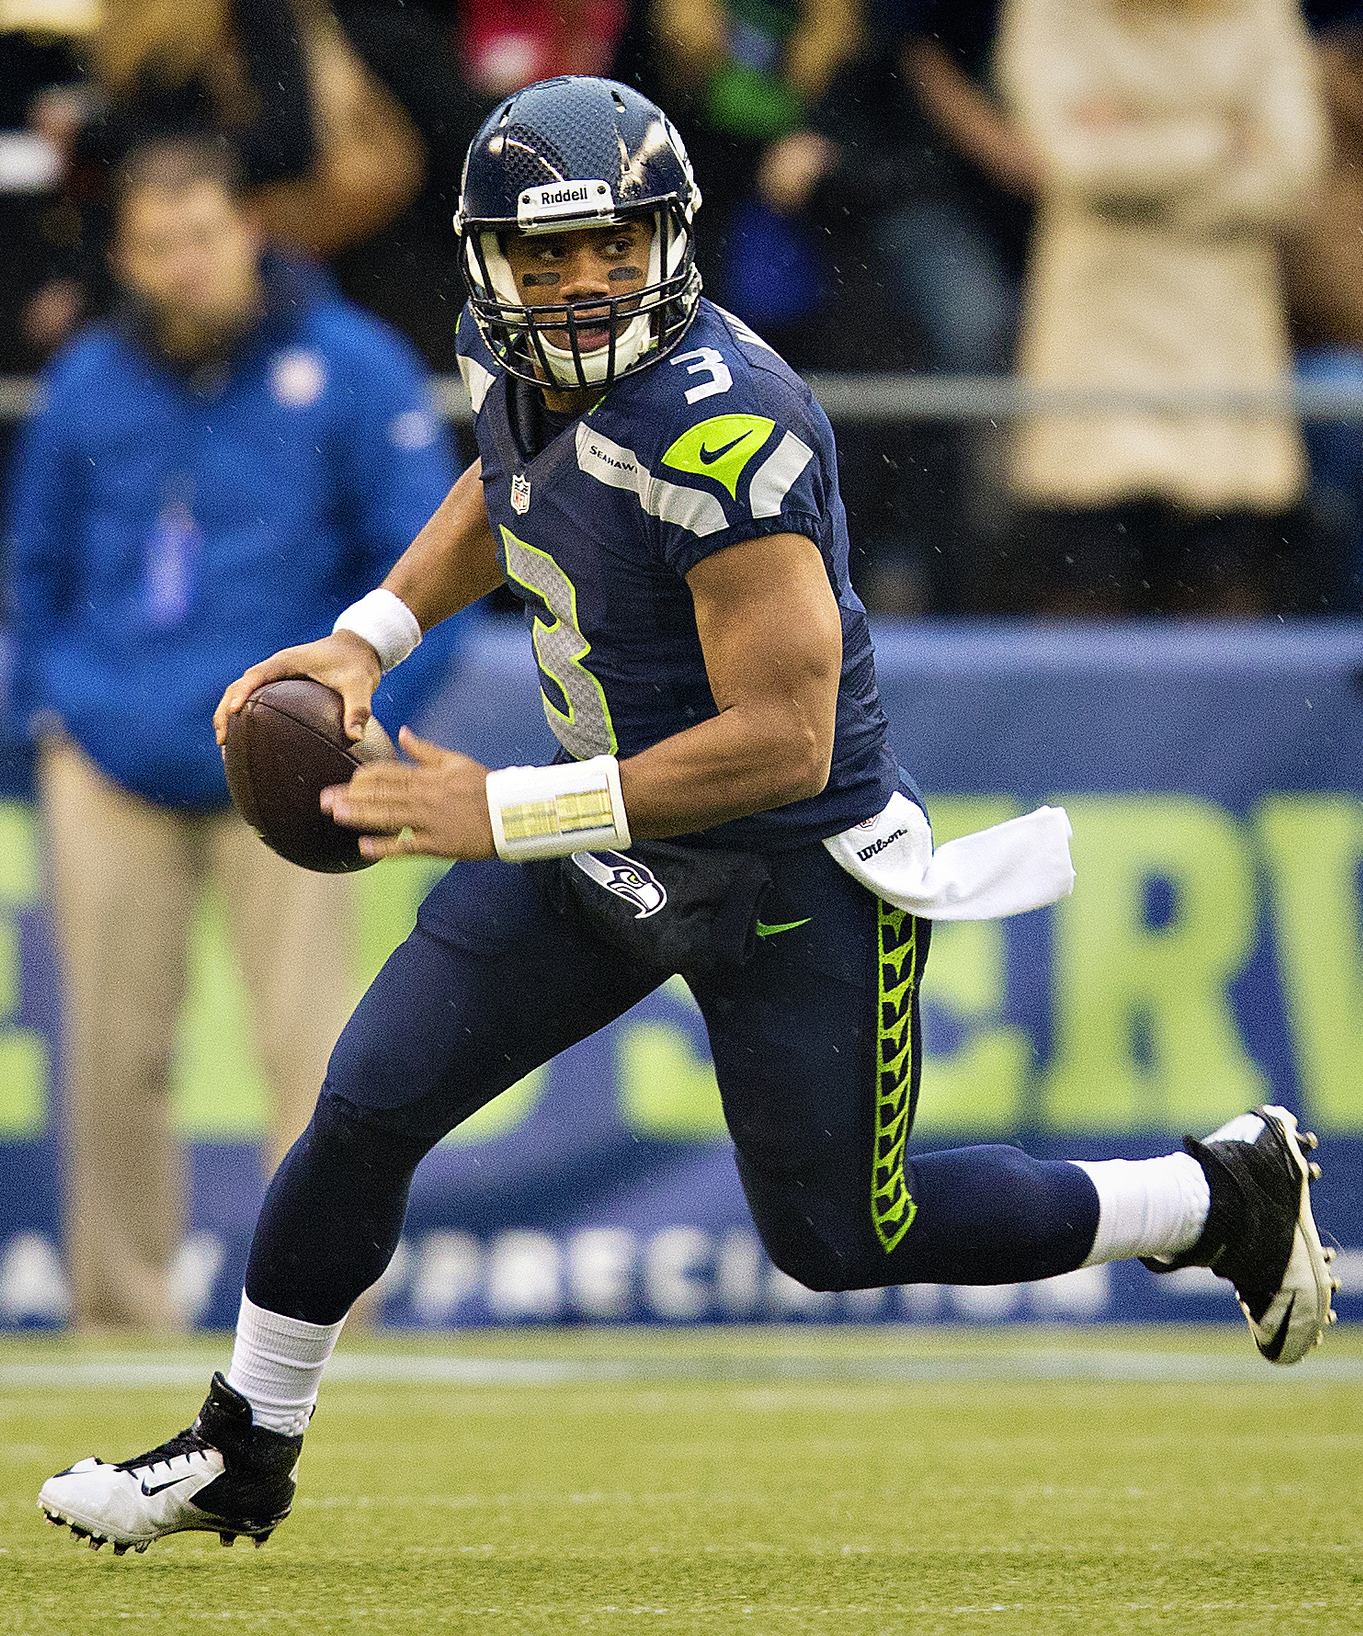 Russell Wilson in action against the New York Jets Nov. 11, 2012. Is this his moment? Photograph by Larry Maurer.